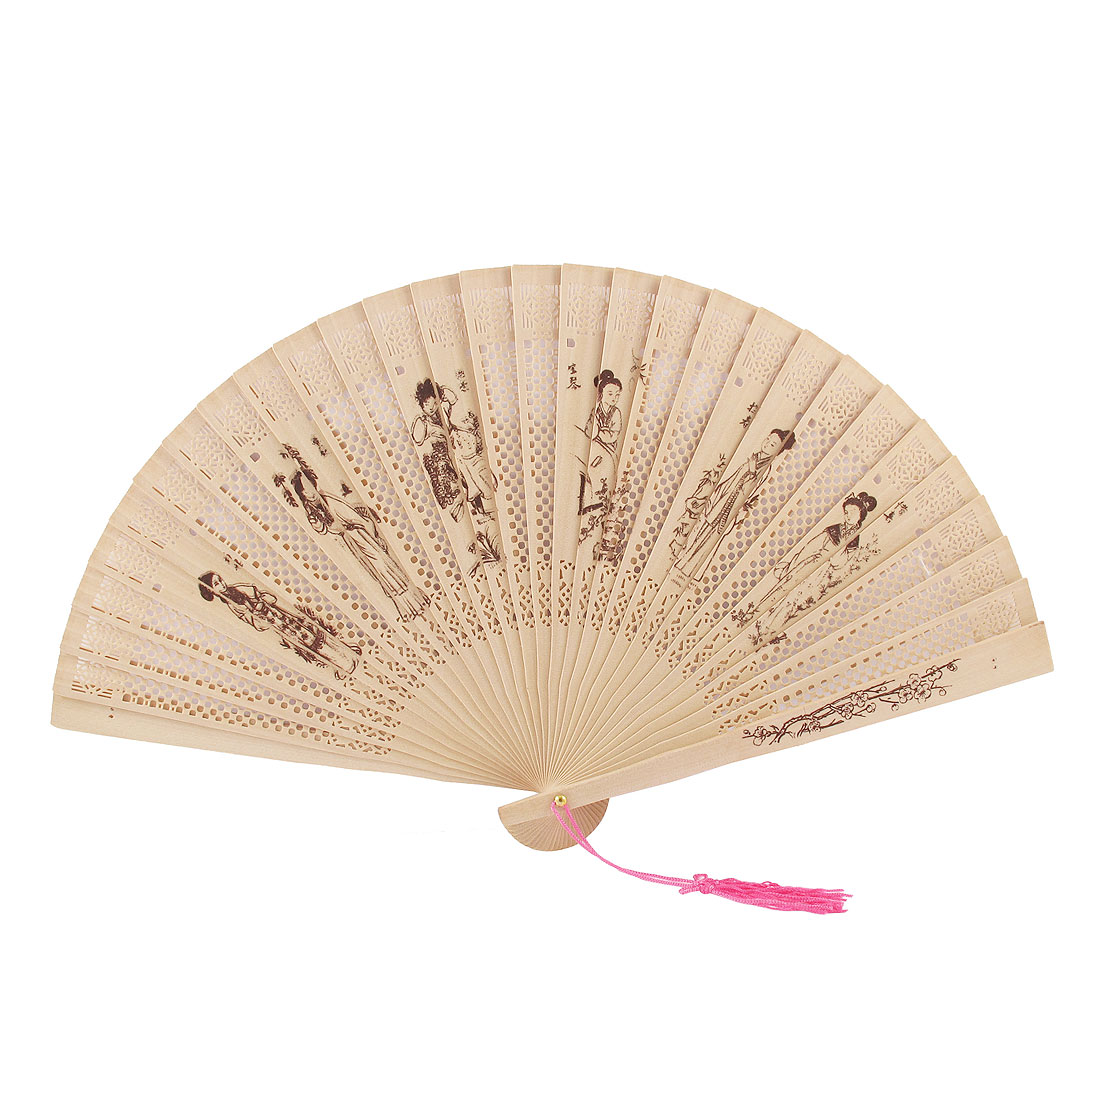 Woman Tassels Accent Beauty Printed Fragrant Wooden Folding Hand Fan Beige